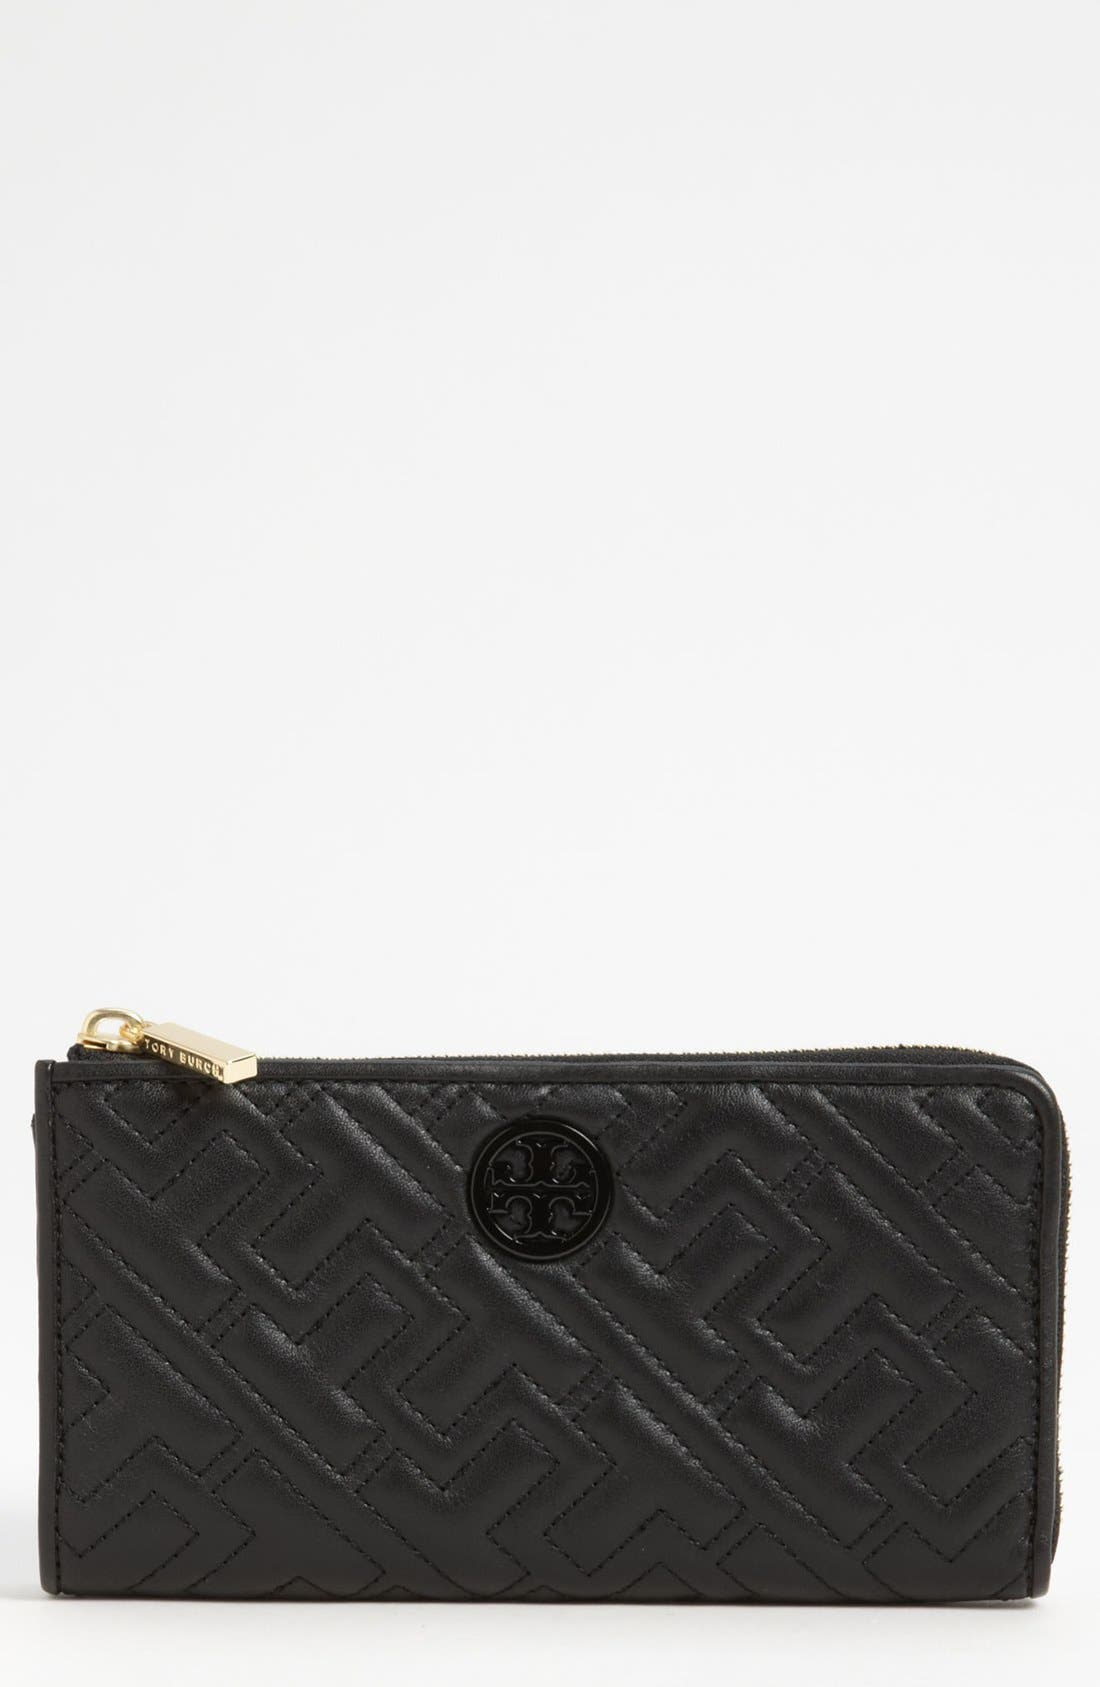 Main Image - Tory Burch Quilted Logo Leather Wallet